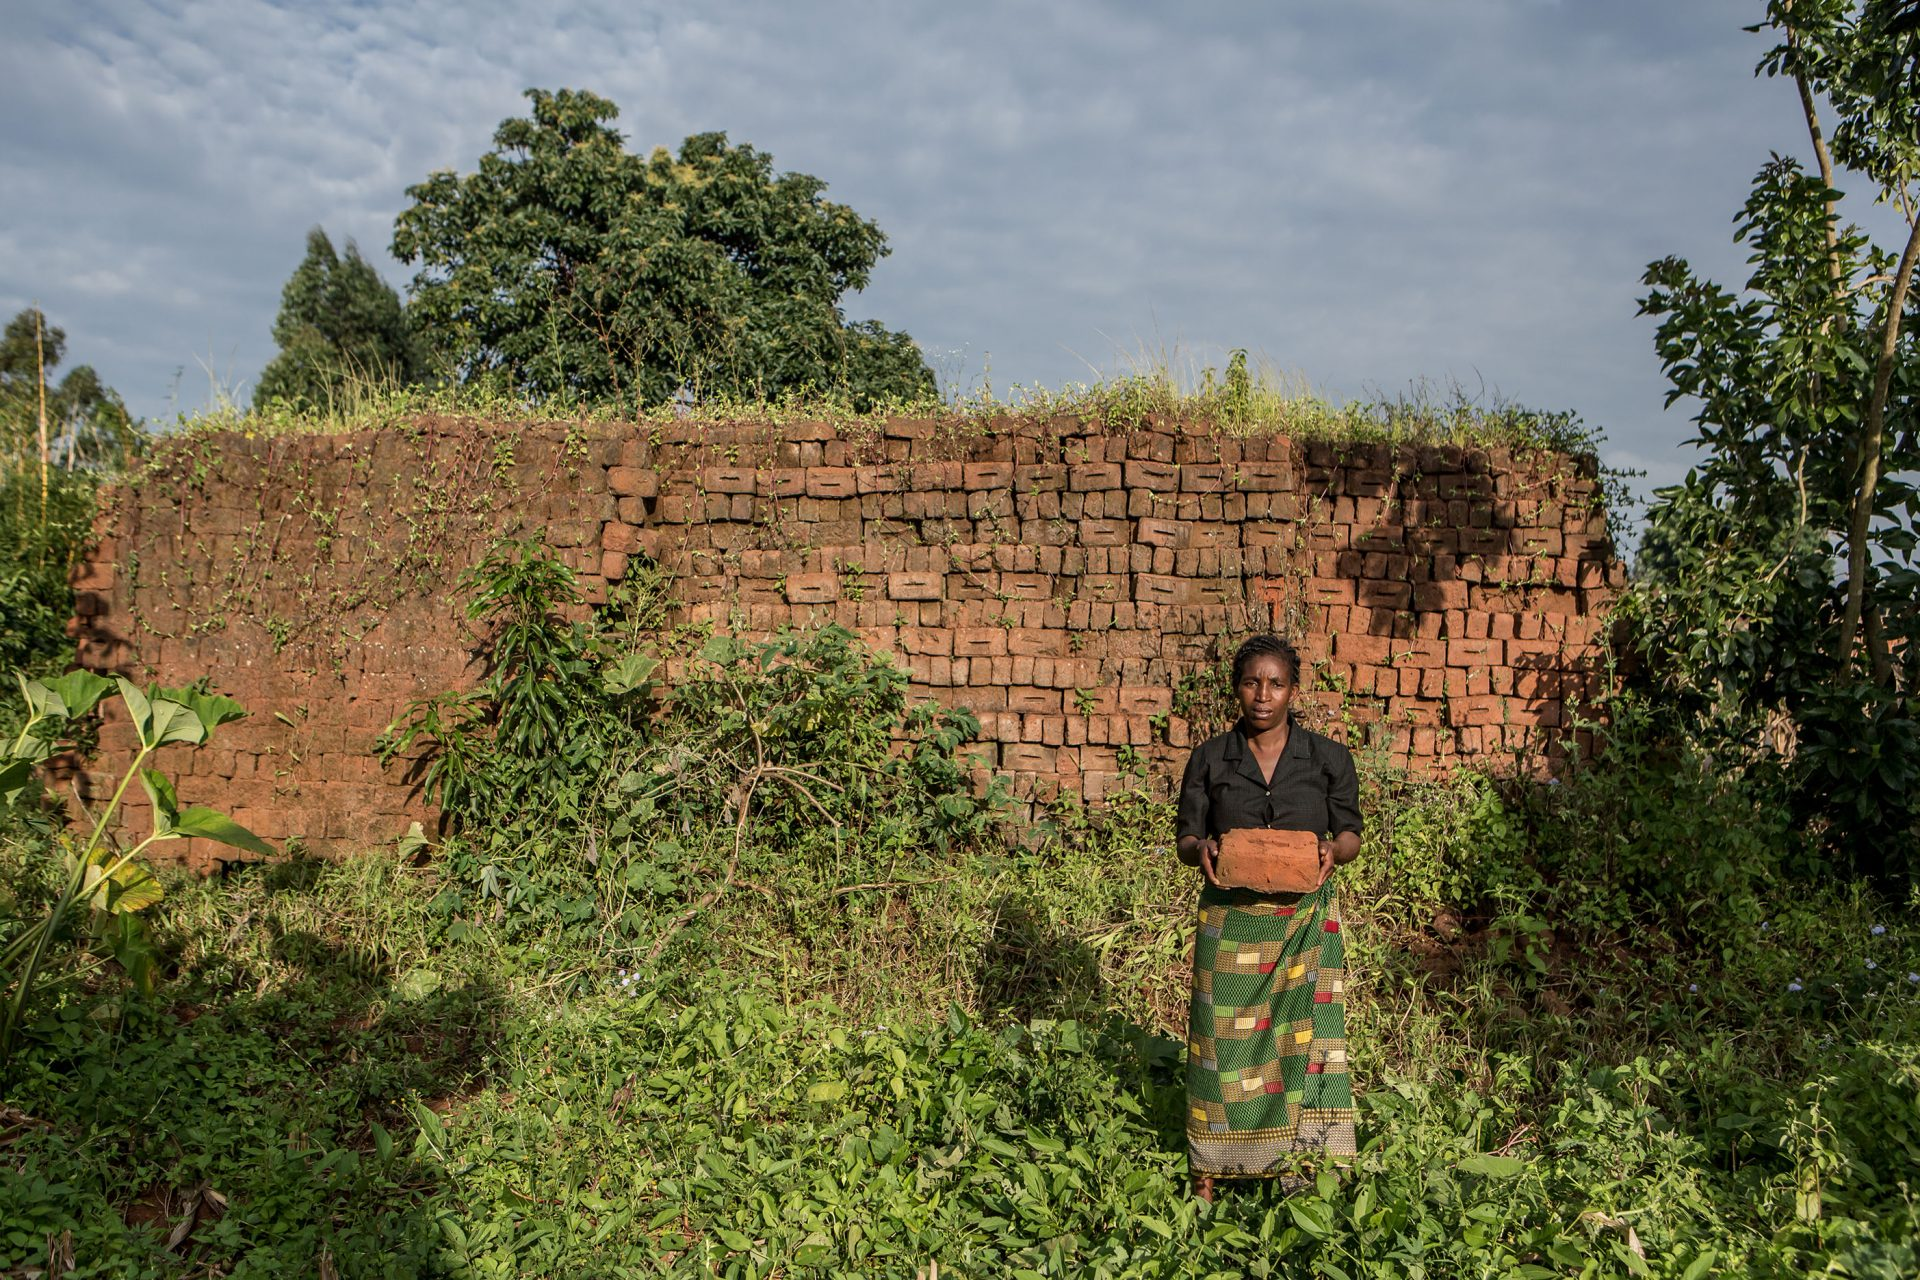 """The training changed my life and helped me to see how it was possible to live with hope. I never believed that I would ever get a job as an HIV-positive person. Now I am able to feed my family and I am hoping to build a house with the 1500 bricks I hav"